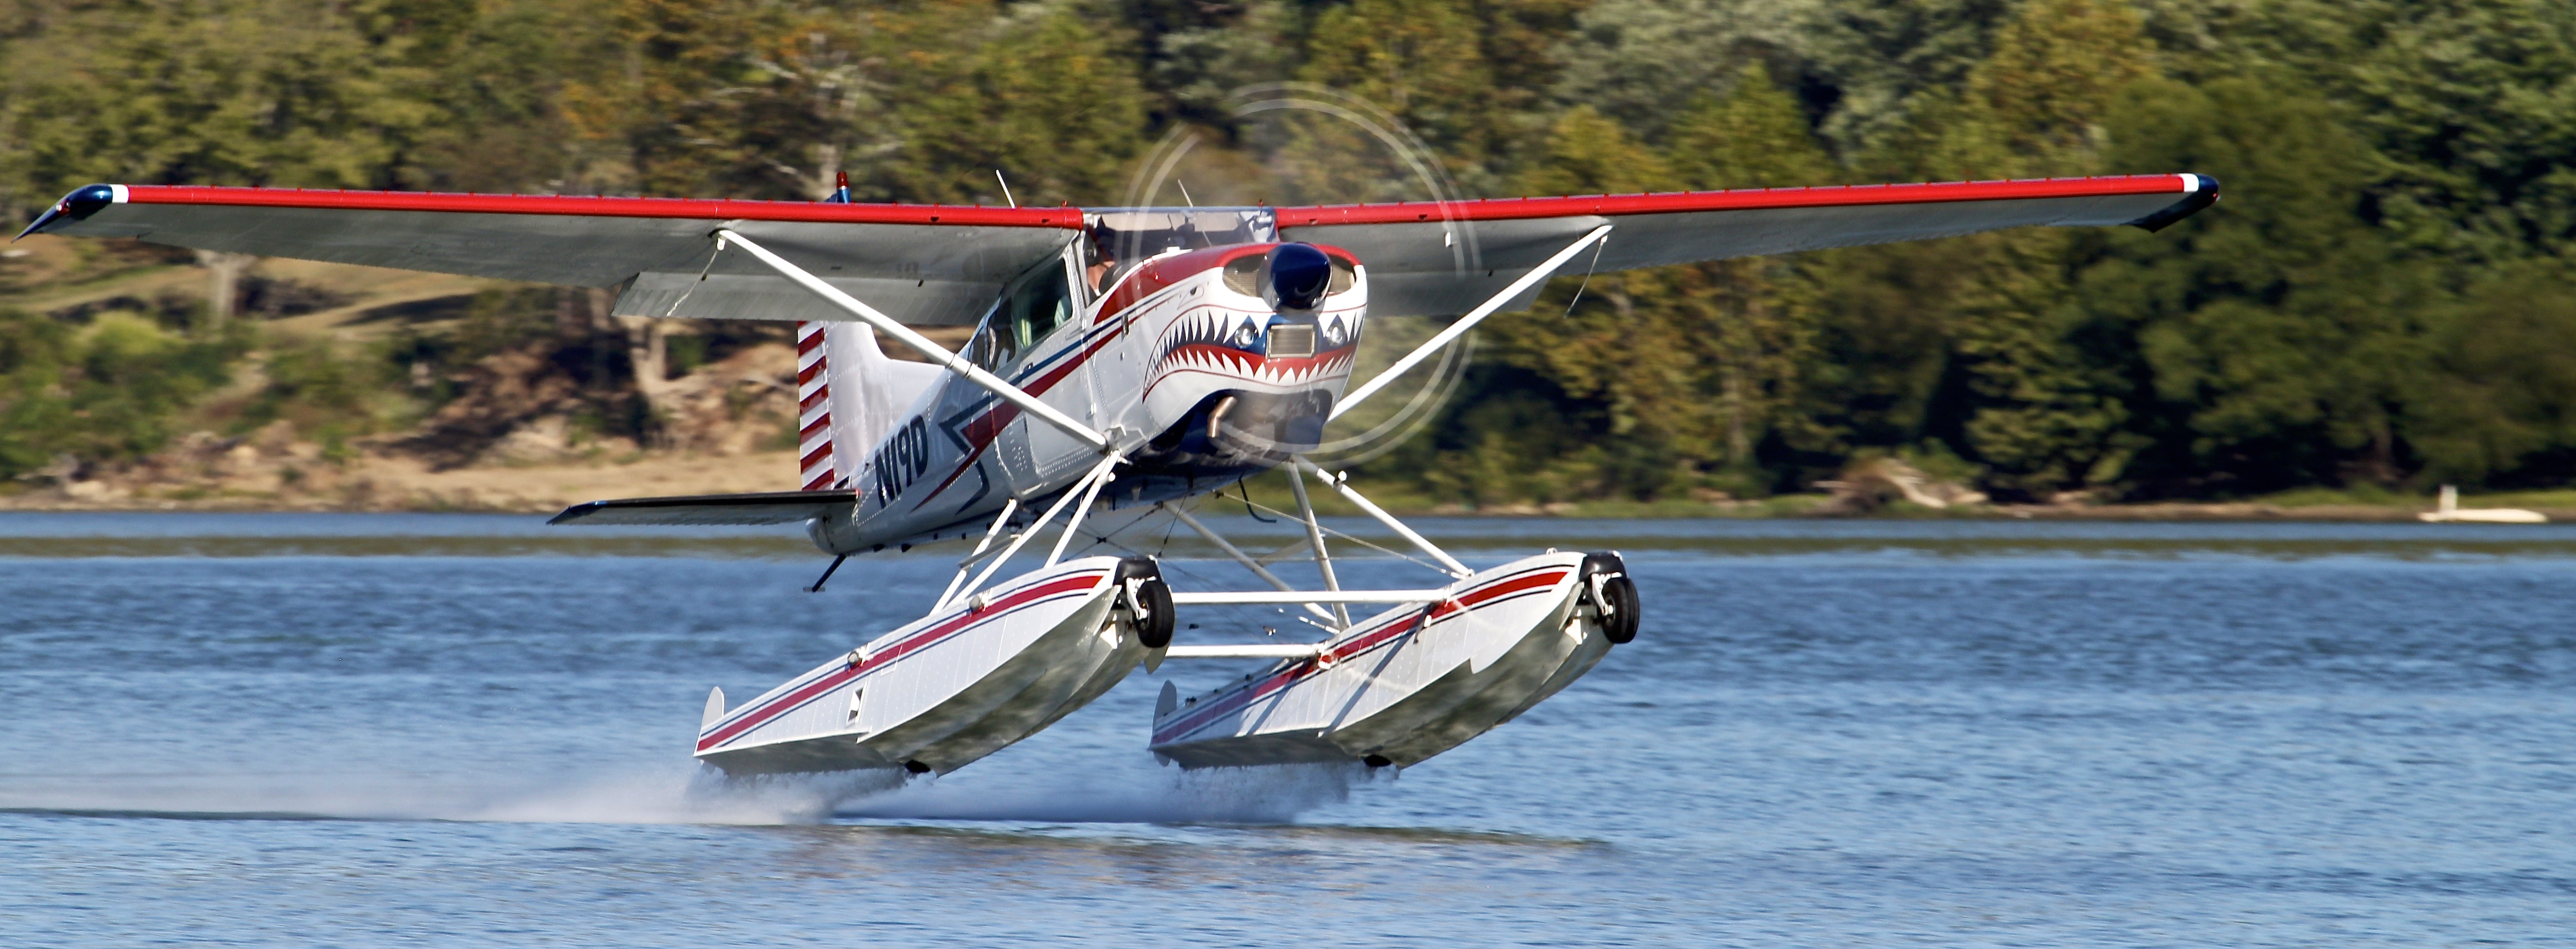 N19D-Shark Aviation Amphibious 185 Seaplane Water Takeoff